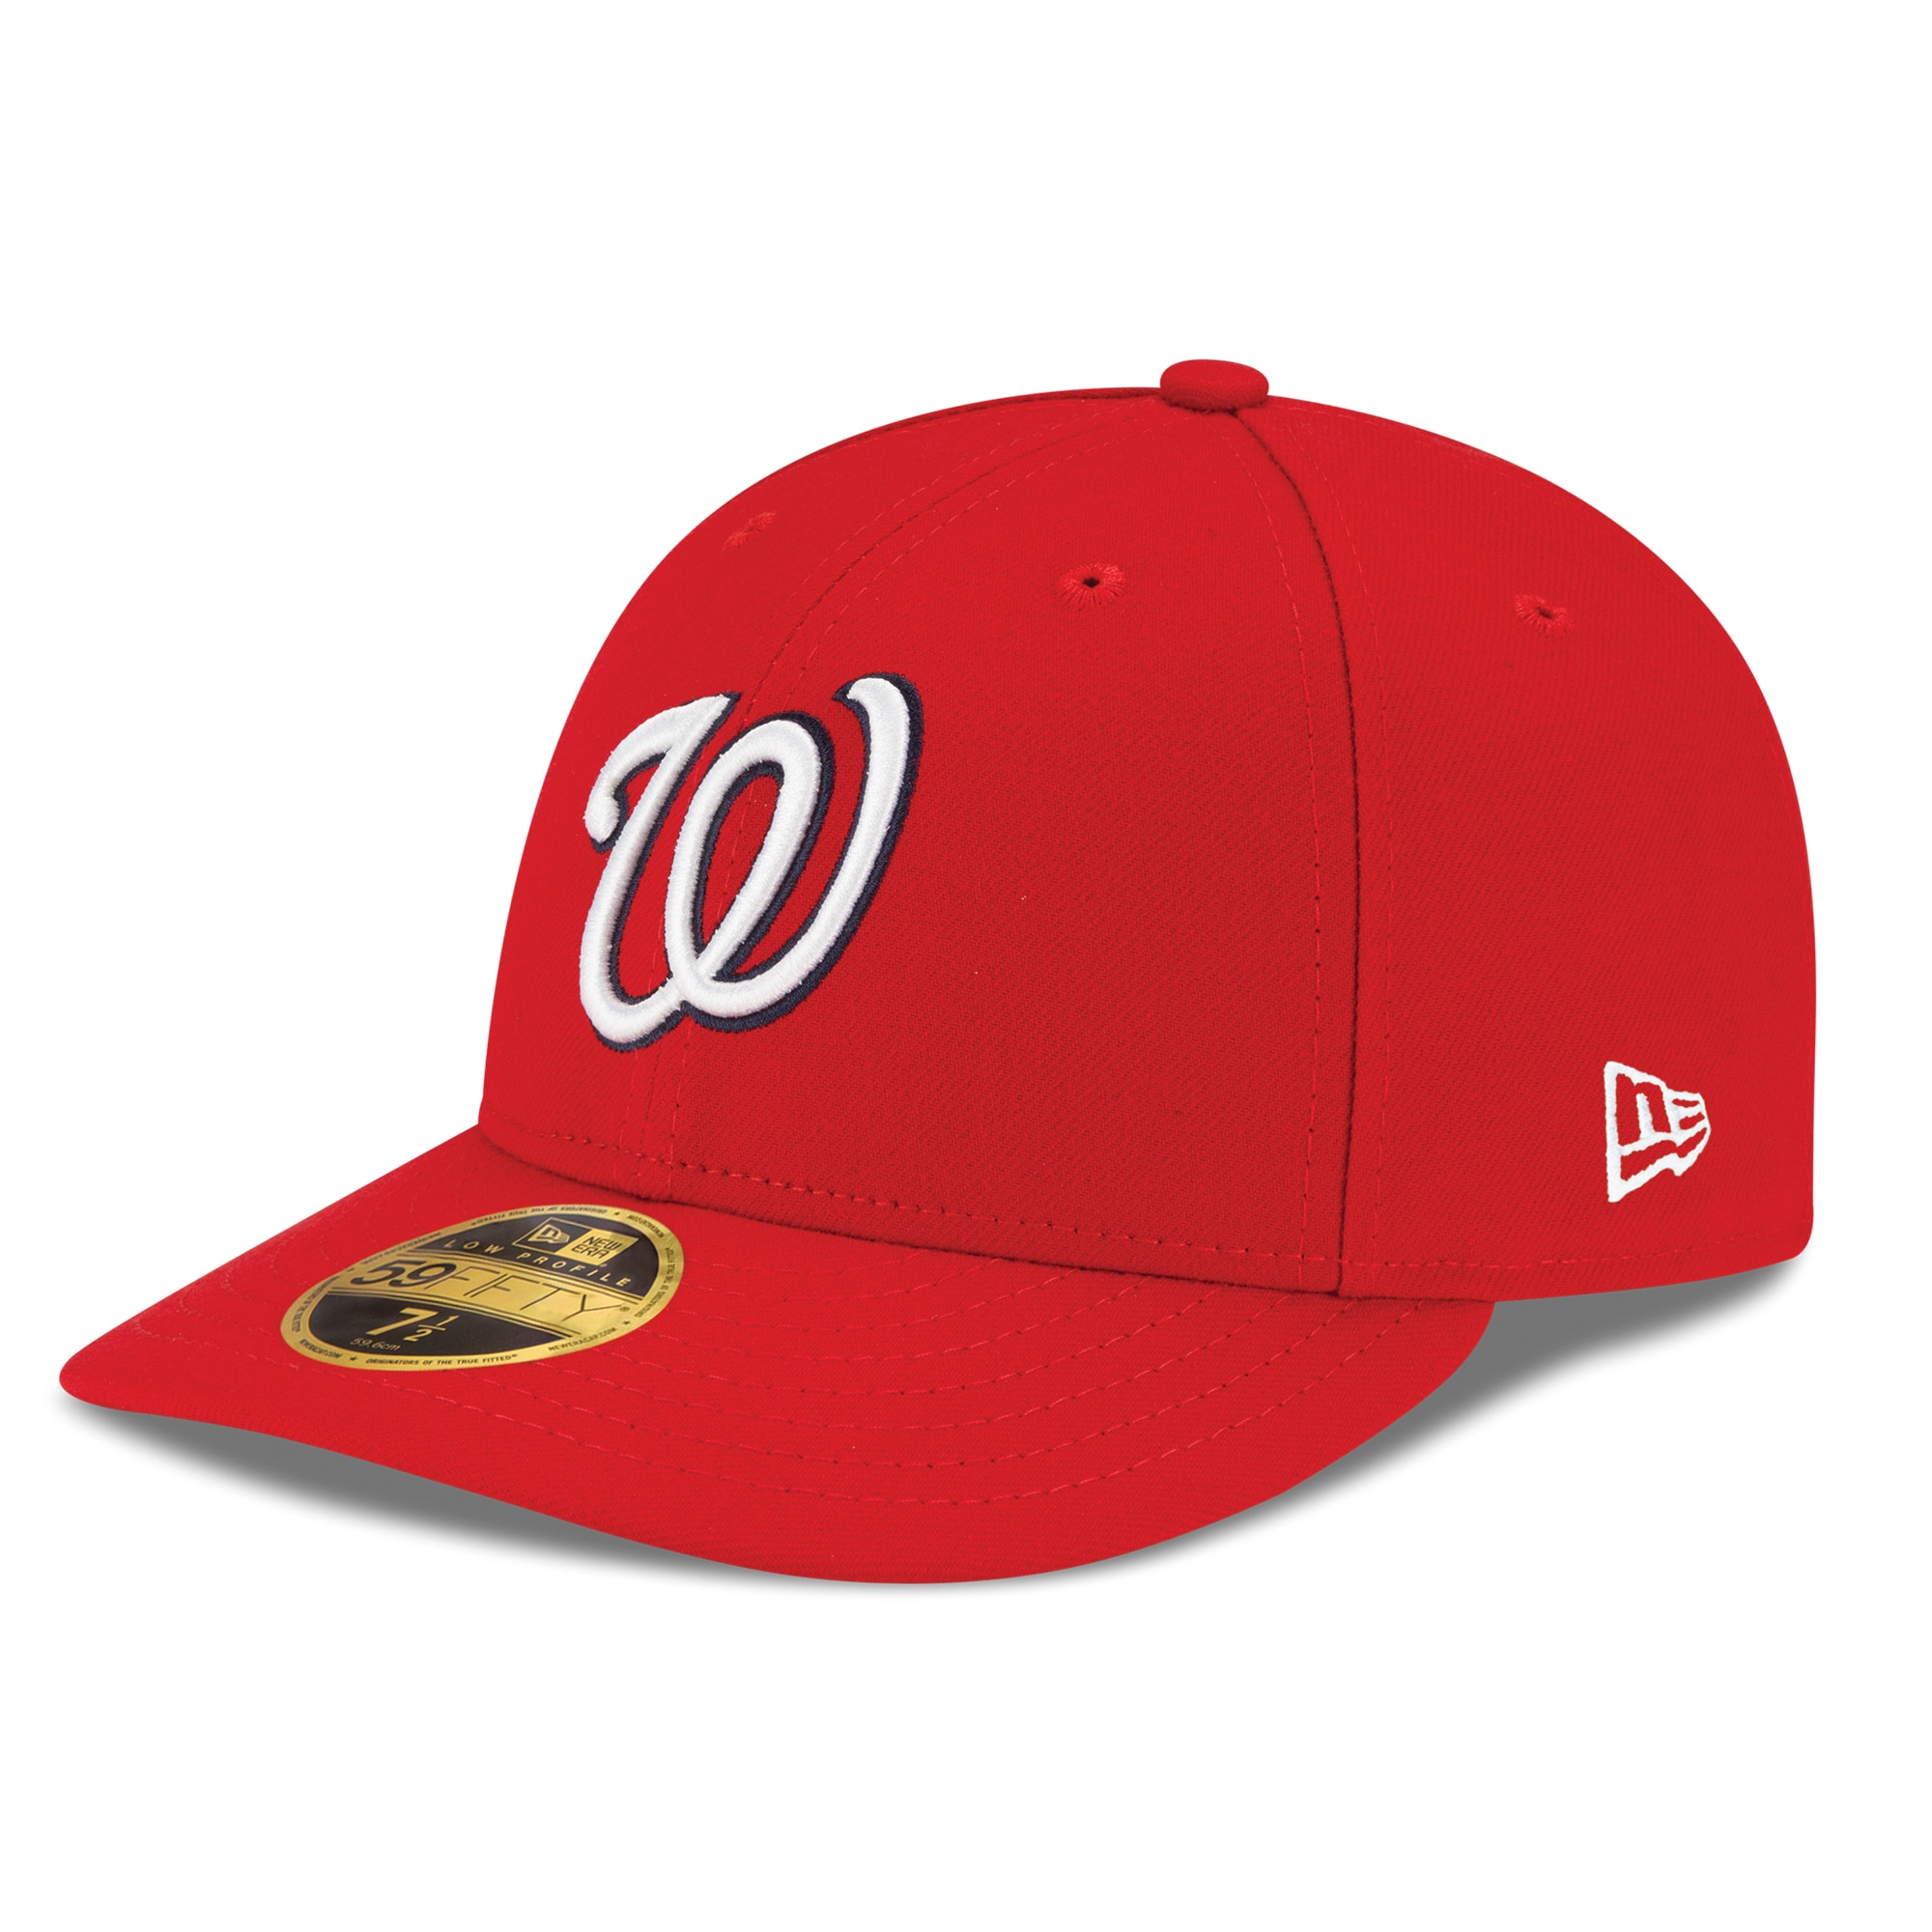 Washington Nationals New Era Game Authentic Collection On-Field Low Profile 59FIFTY Fitted Hat - Red